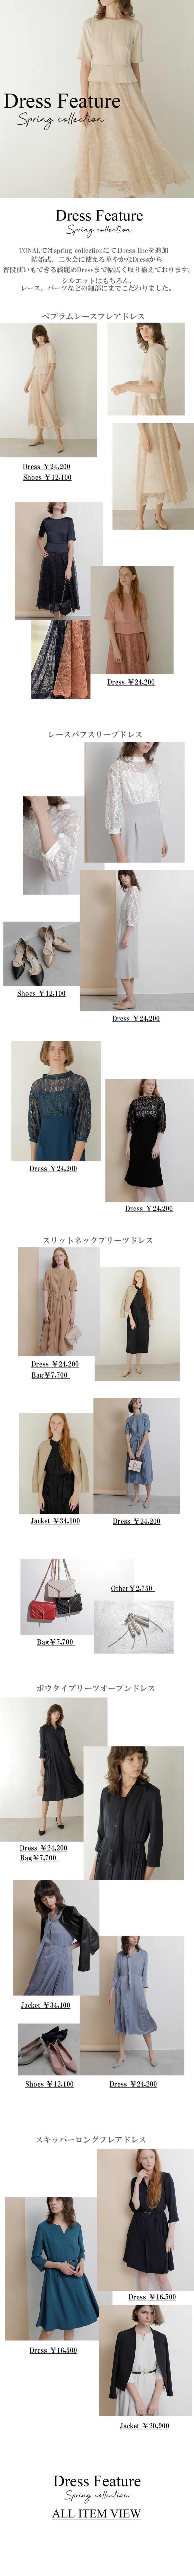 Dress Feature Spring collection